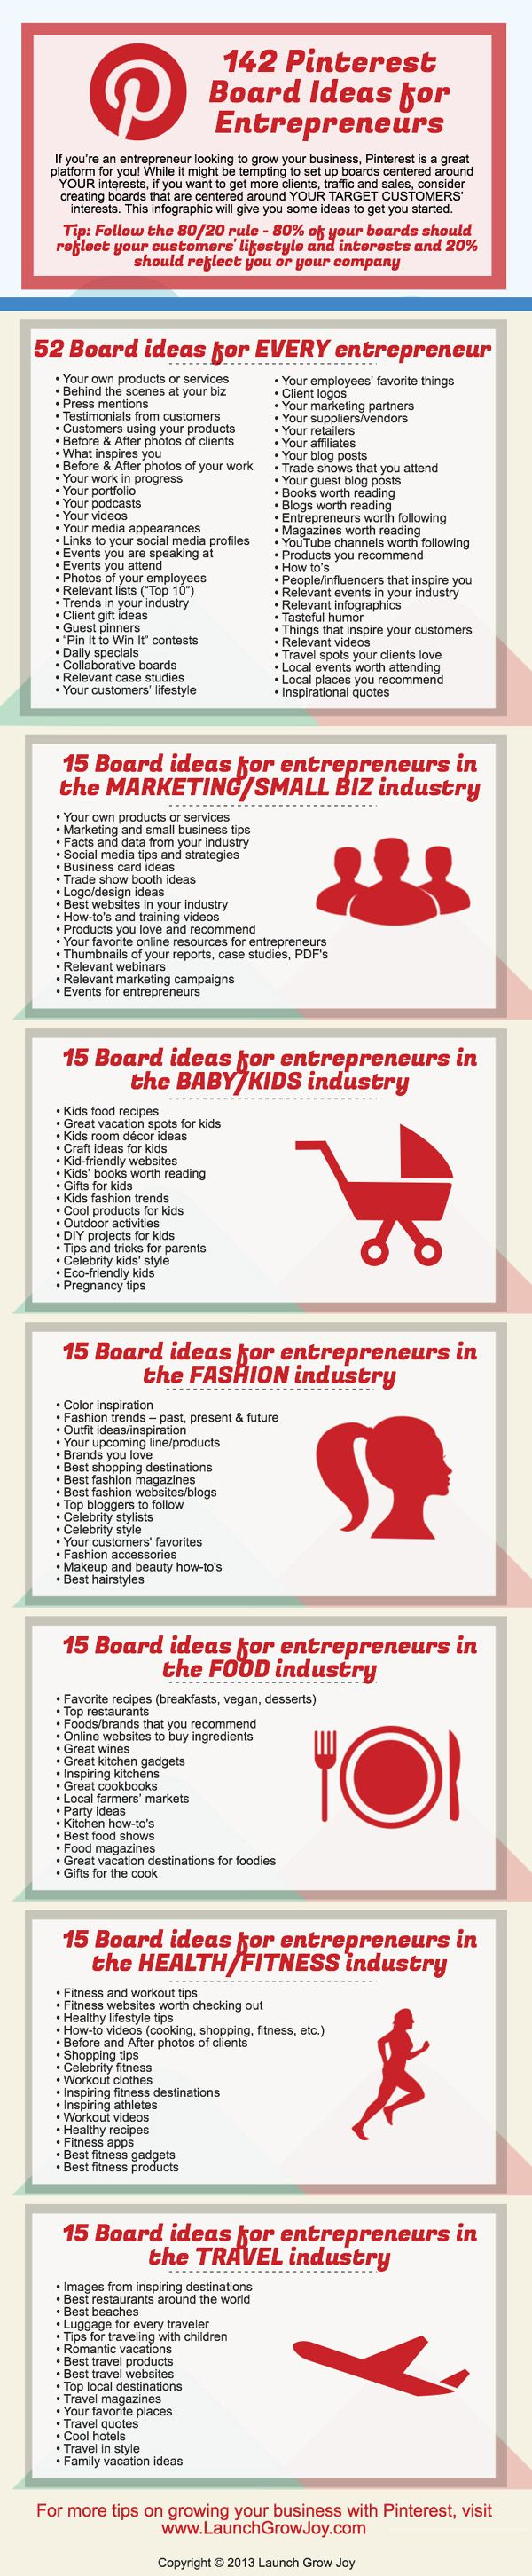 142 Pinterest Pinboard Ideas for Every Entrepreneur (Infographics) | SociableBlog